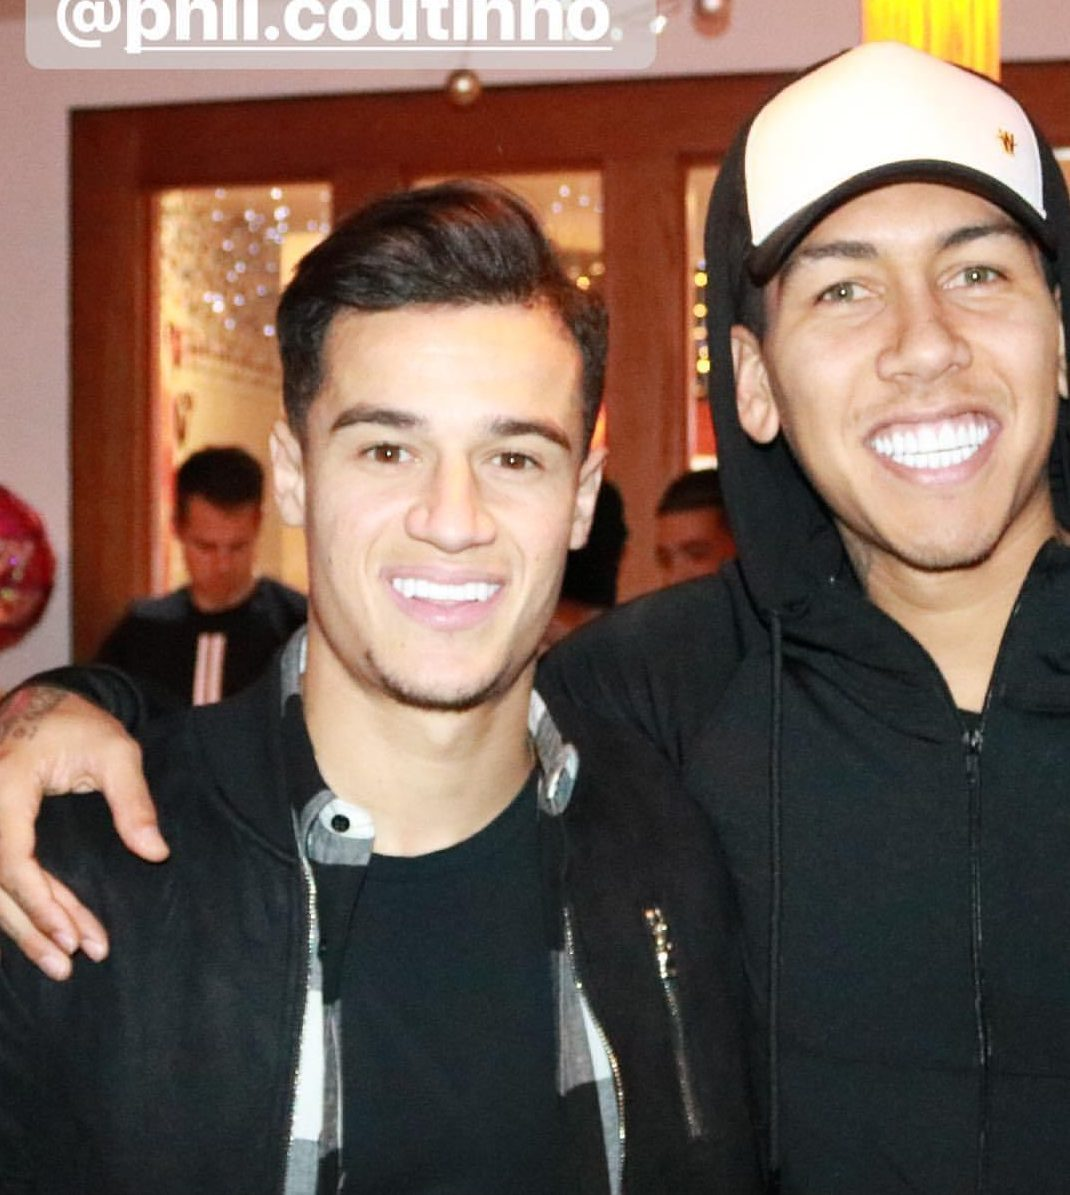 Philippe Coutinho and Roberto Firmino formed a close bond while at Liverpool together